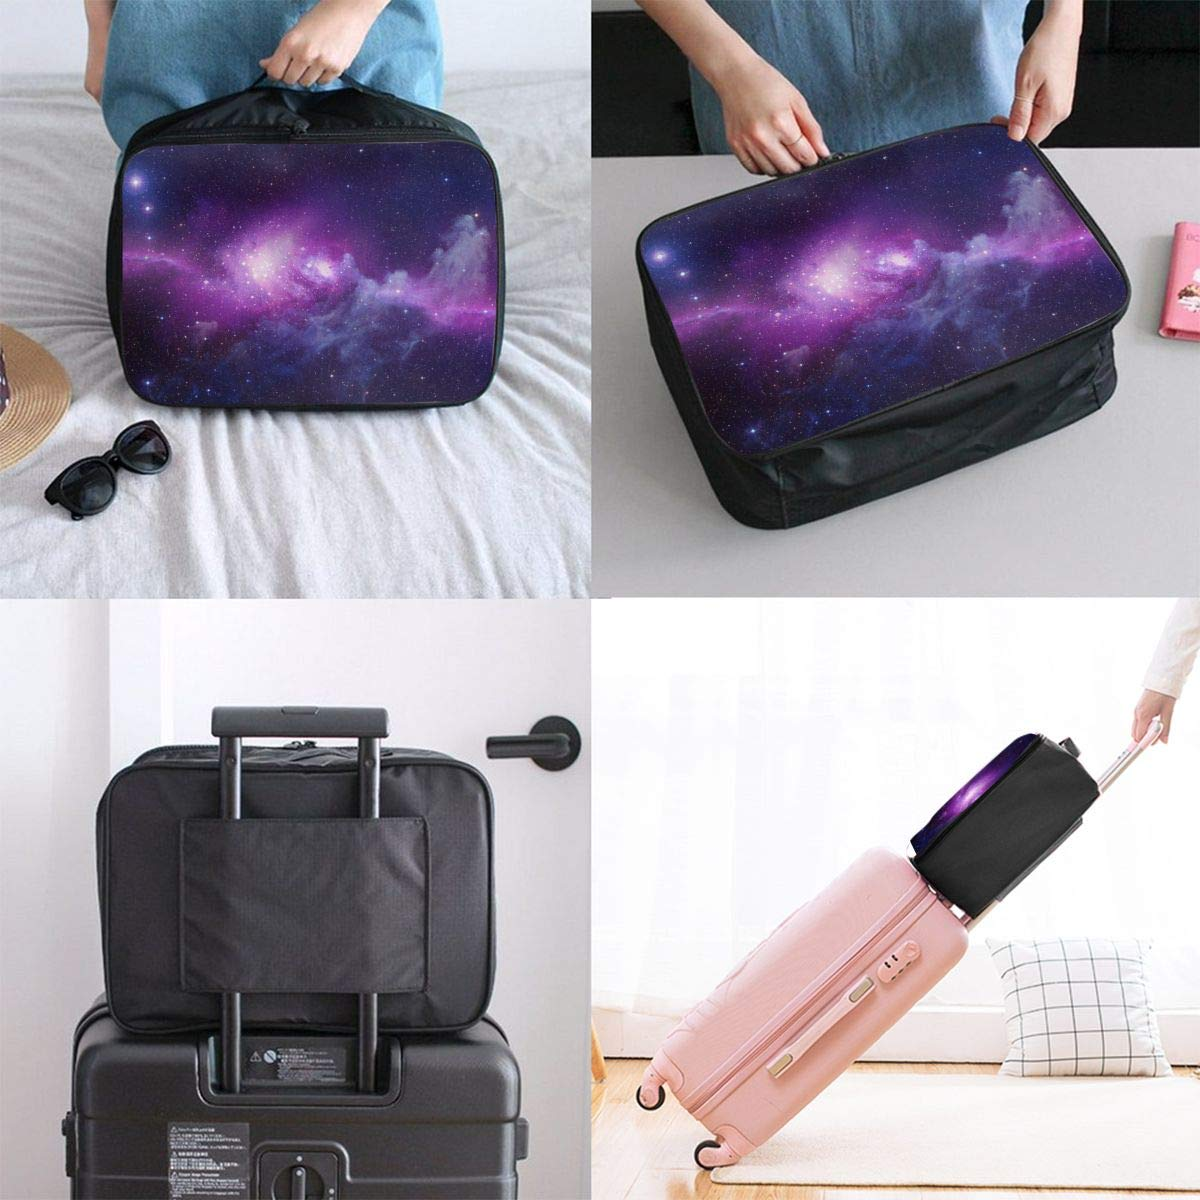 Portable Duffle Bag for Travel Gym Sports Lightweight Luggage Duffel Tote Bag for Men Women Funny Bikini Corgi Dog Mermaid